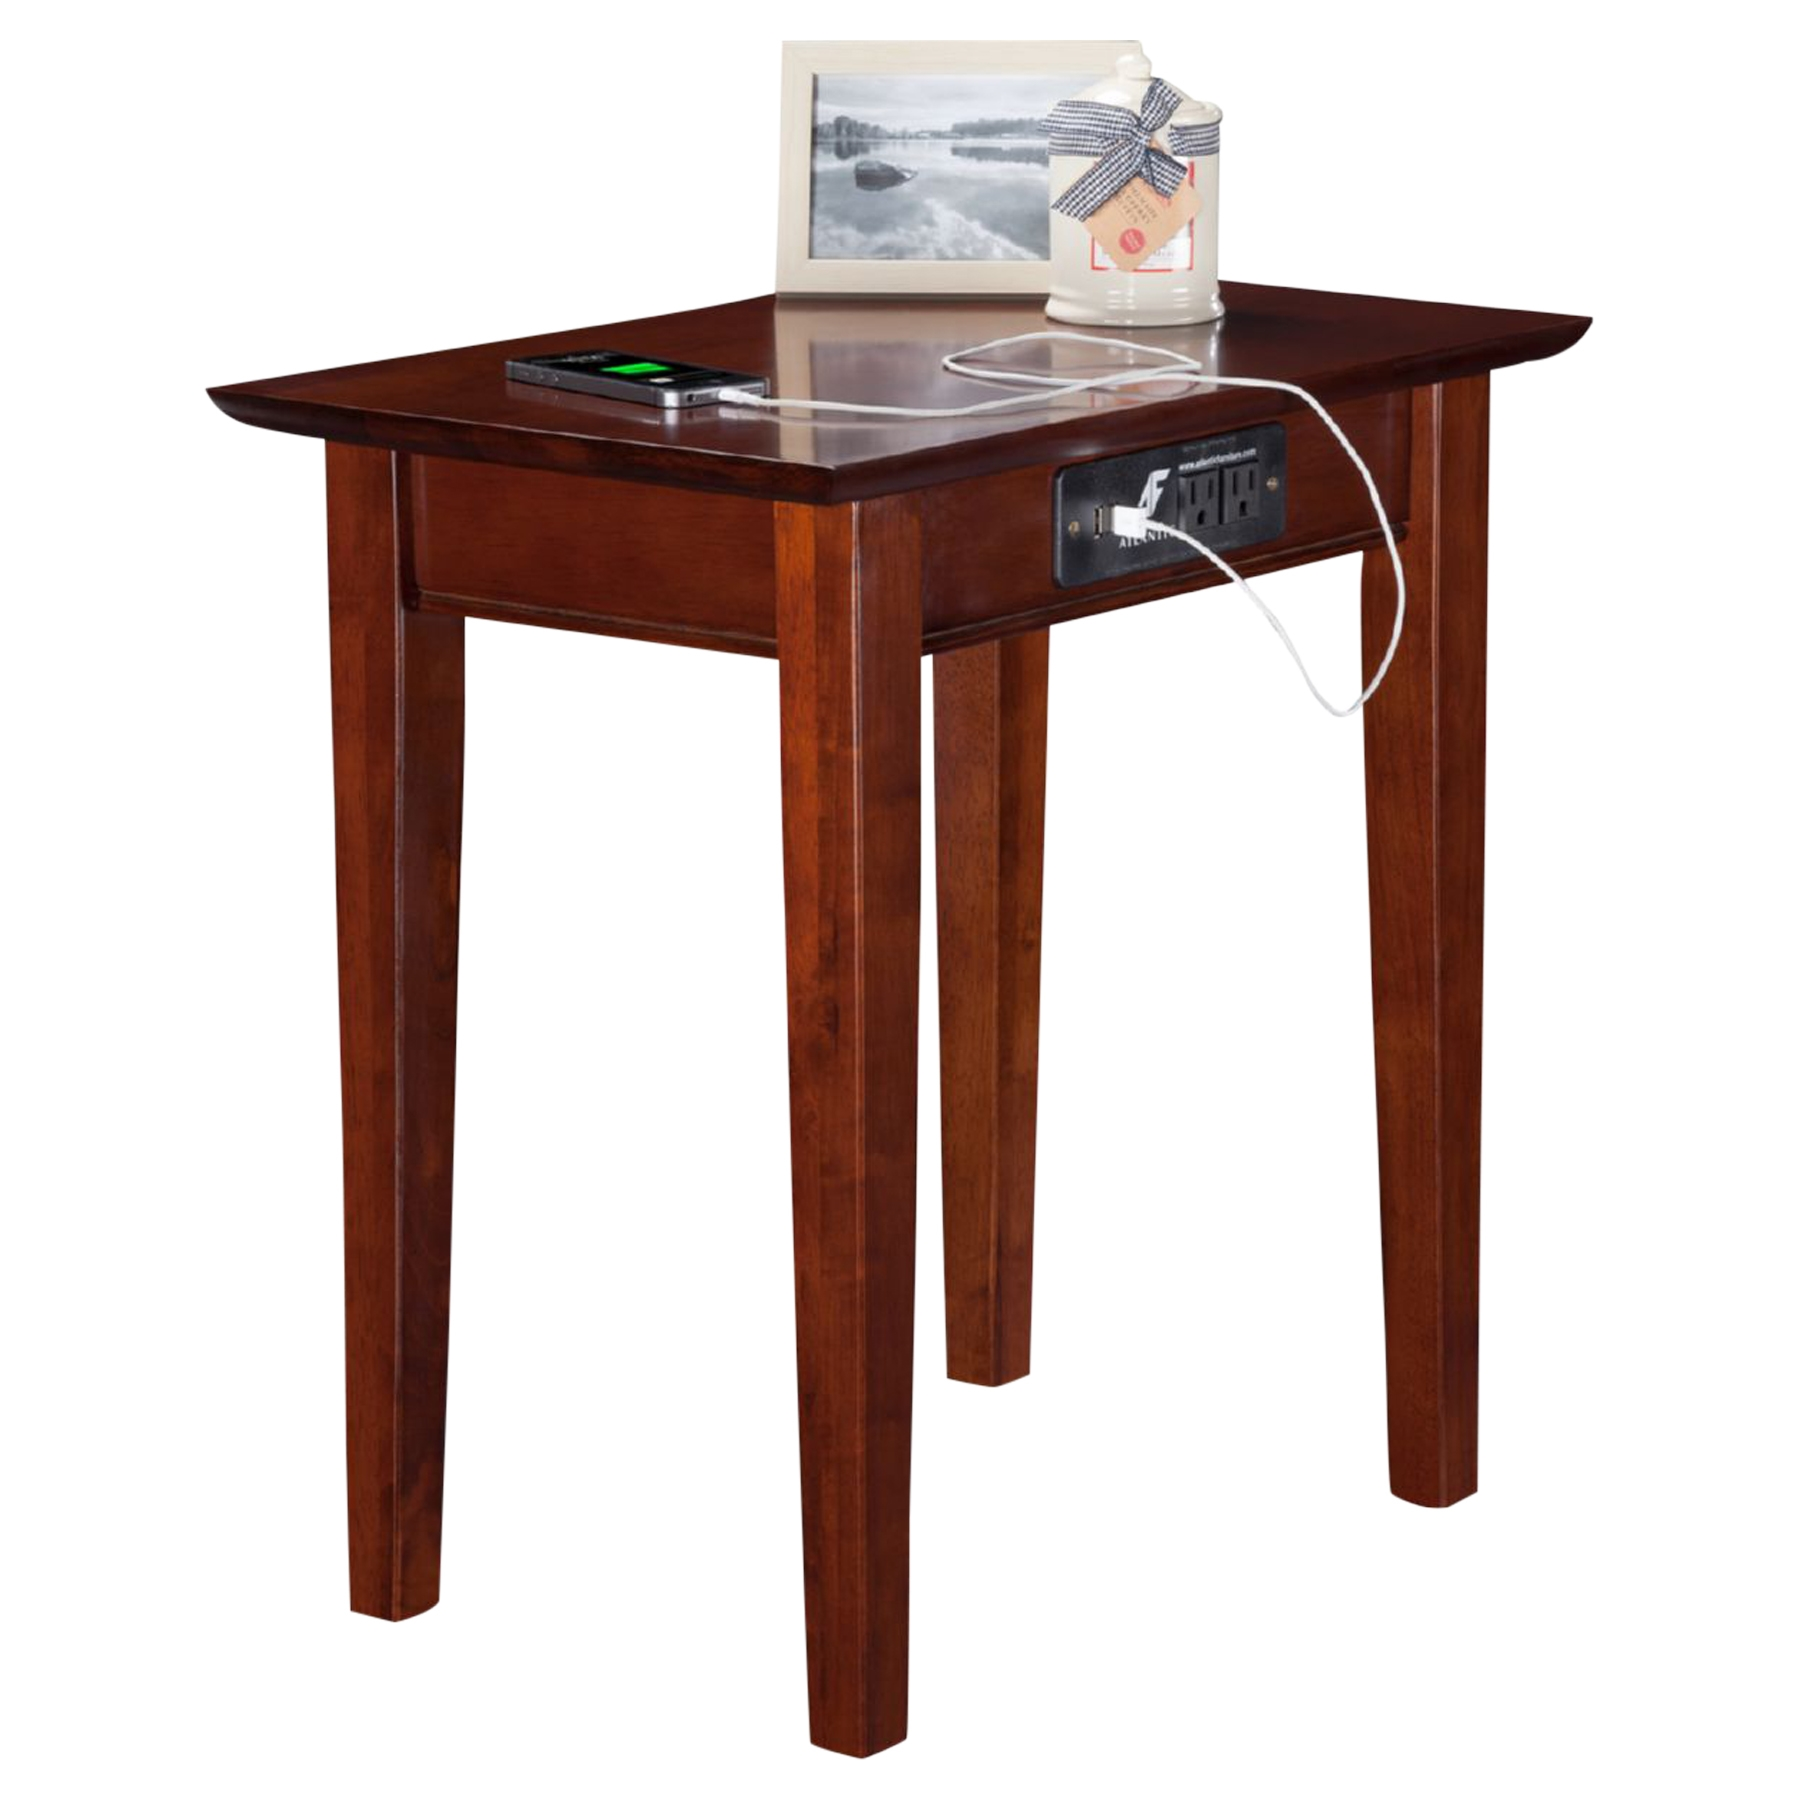 Delightful Shaker Chair Side Table   Rectangular, Charging Station   ATL AH1311 ...